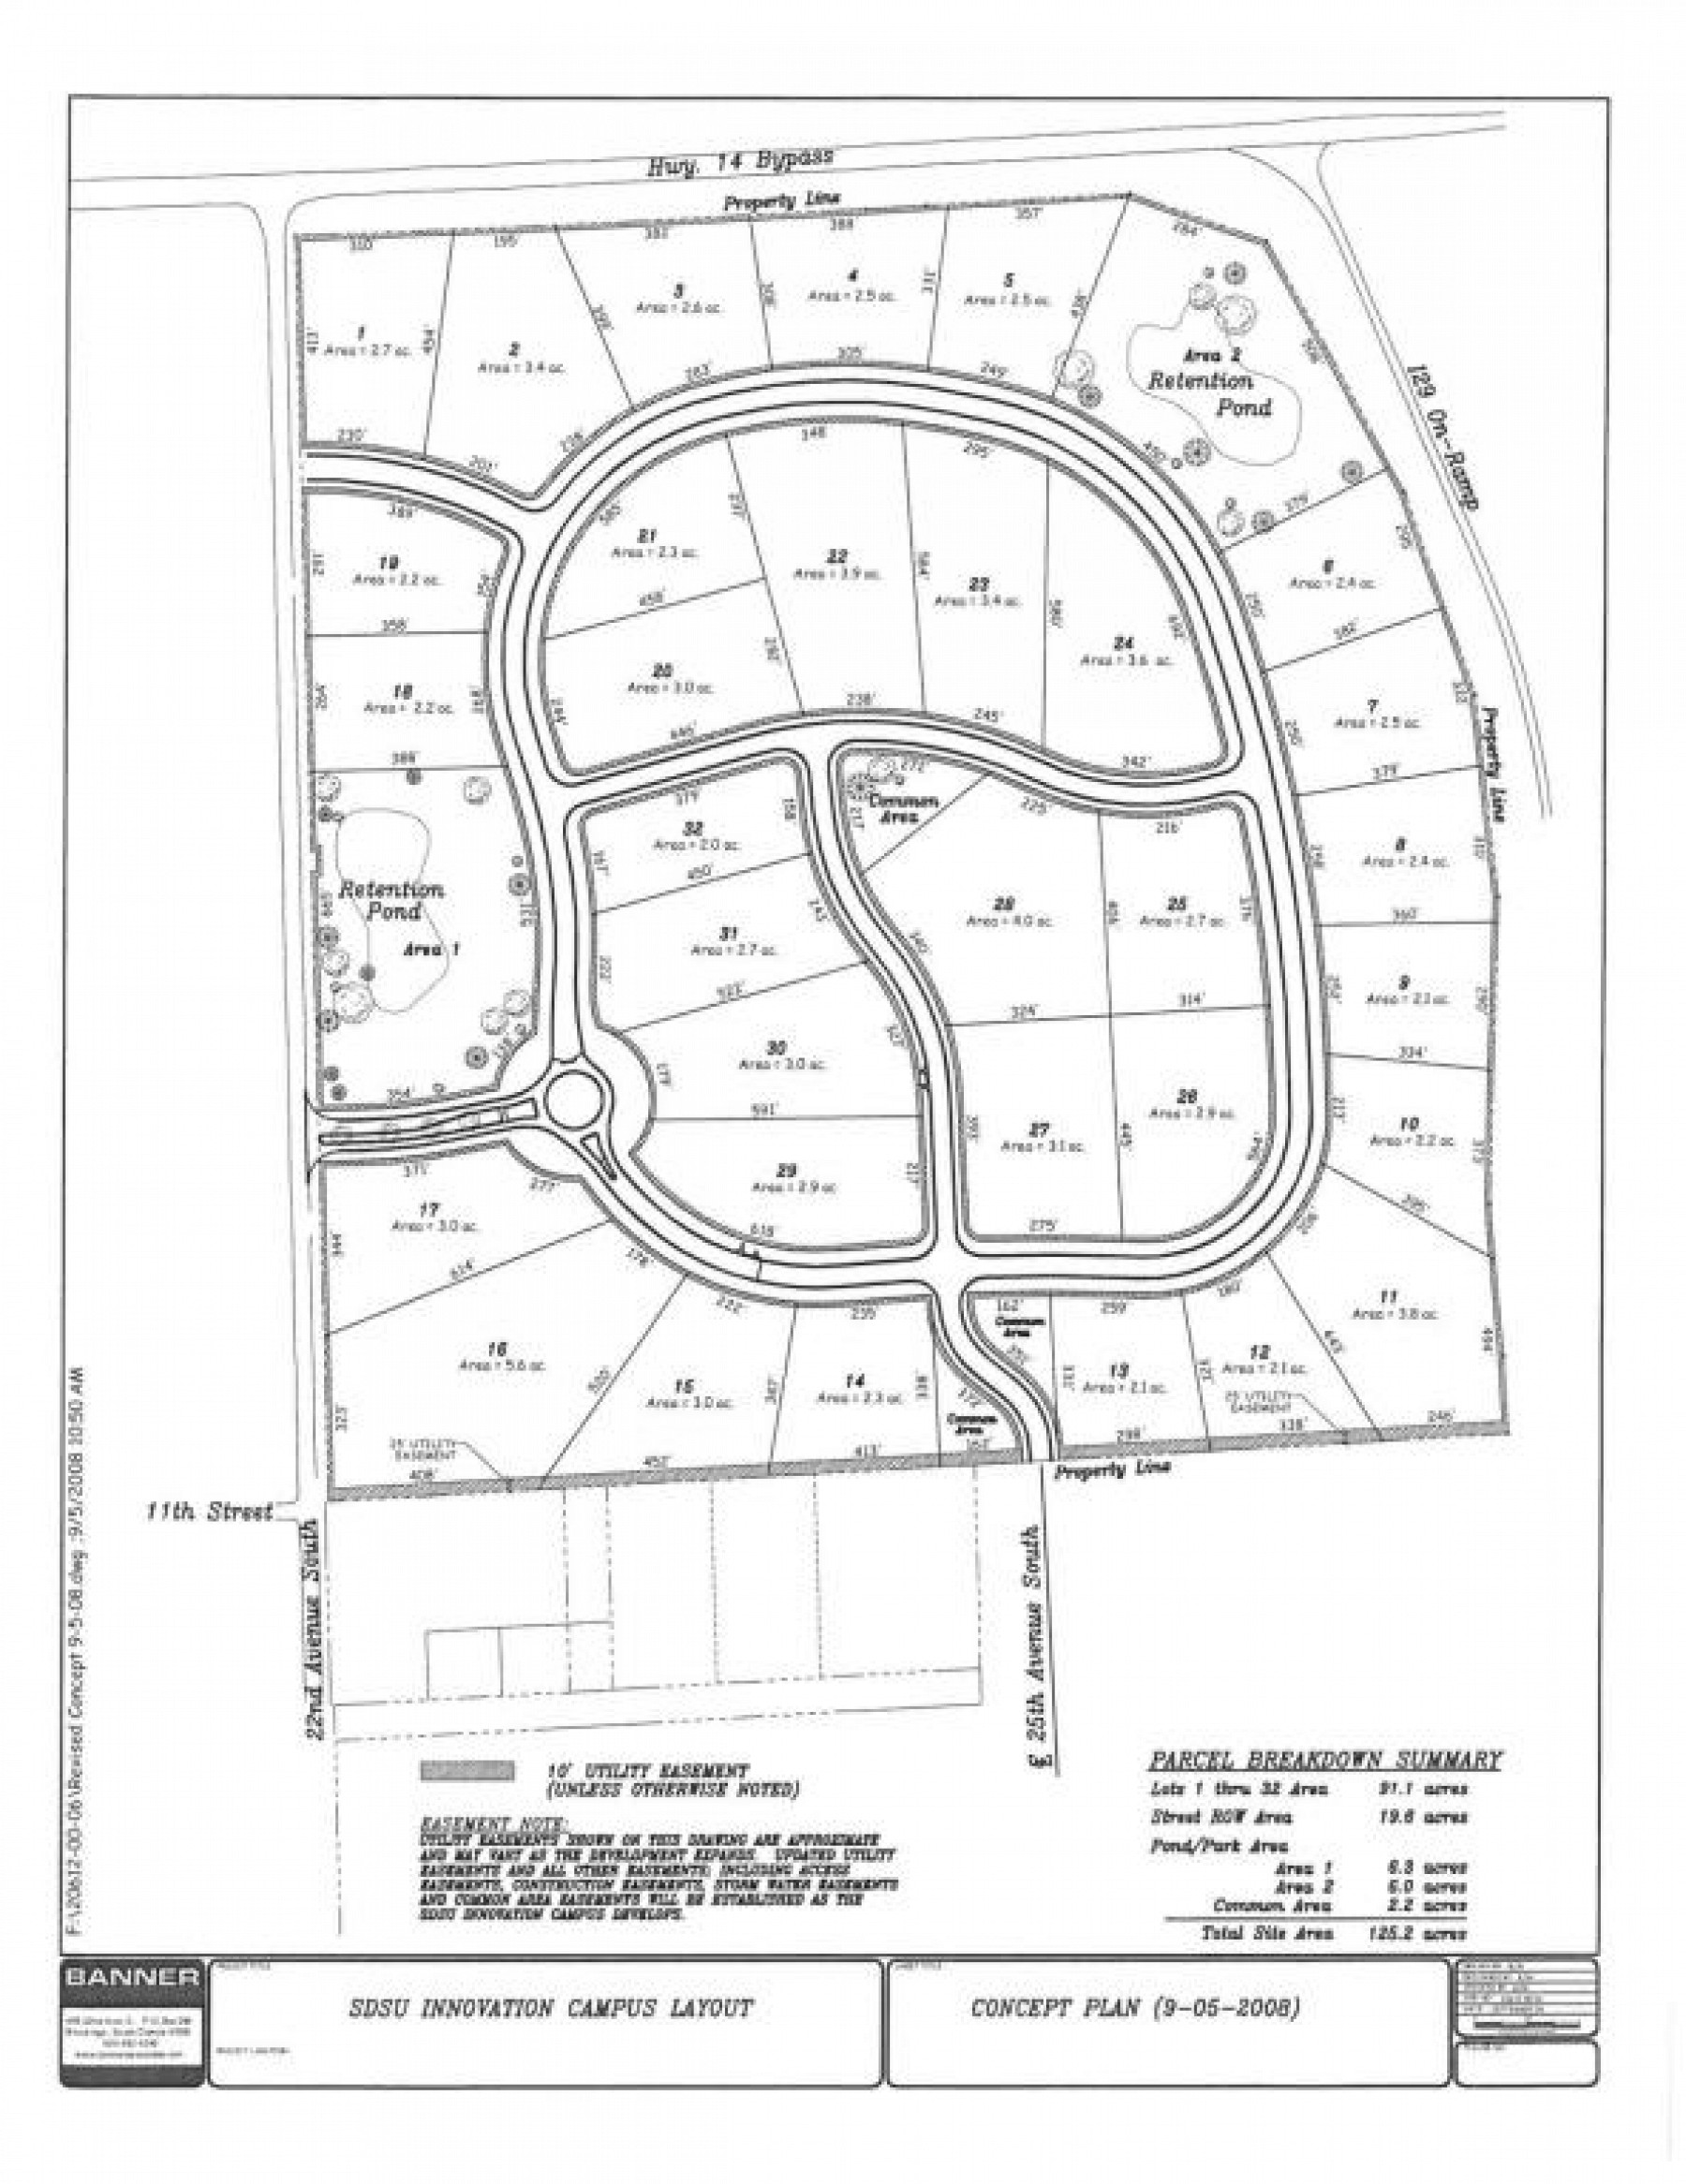 Lot 22 Innovation Campus, Brookings, SD 57006